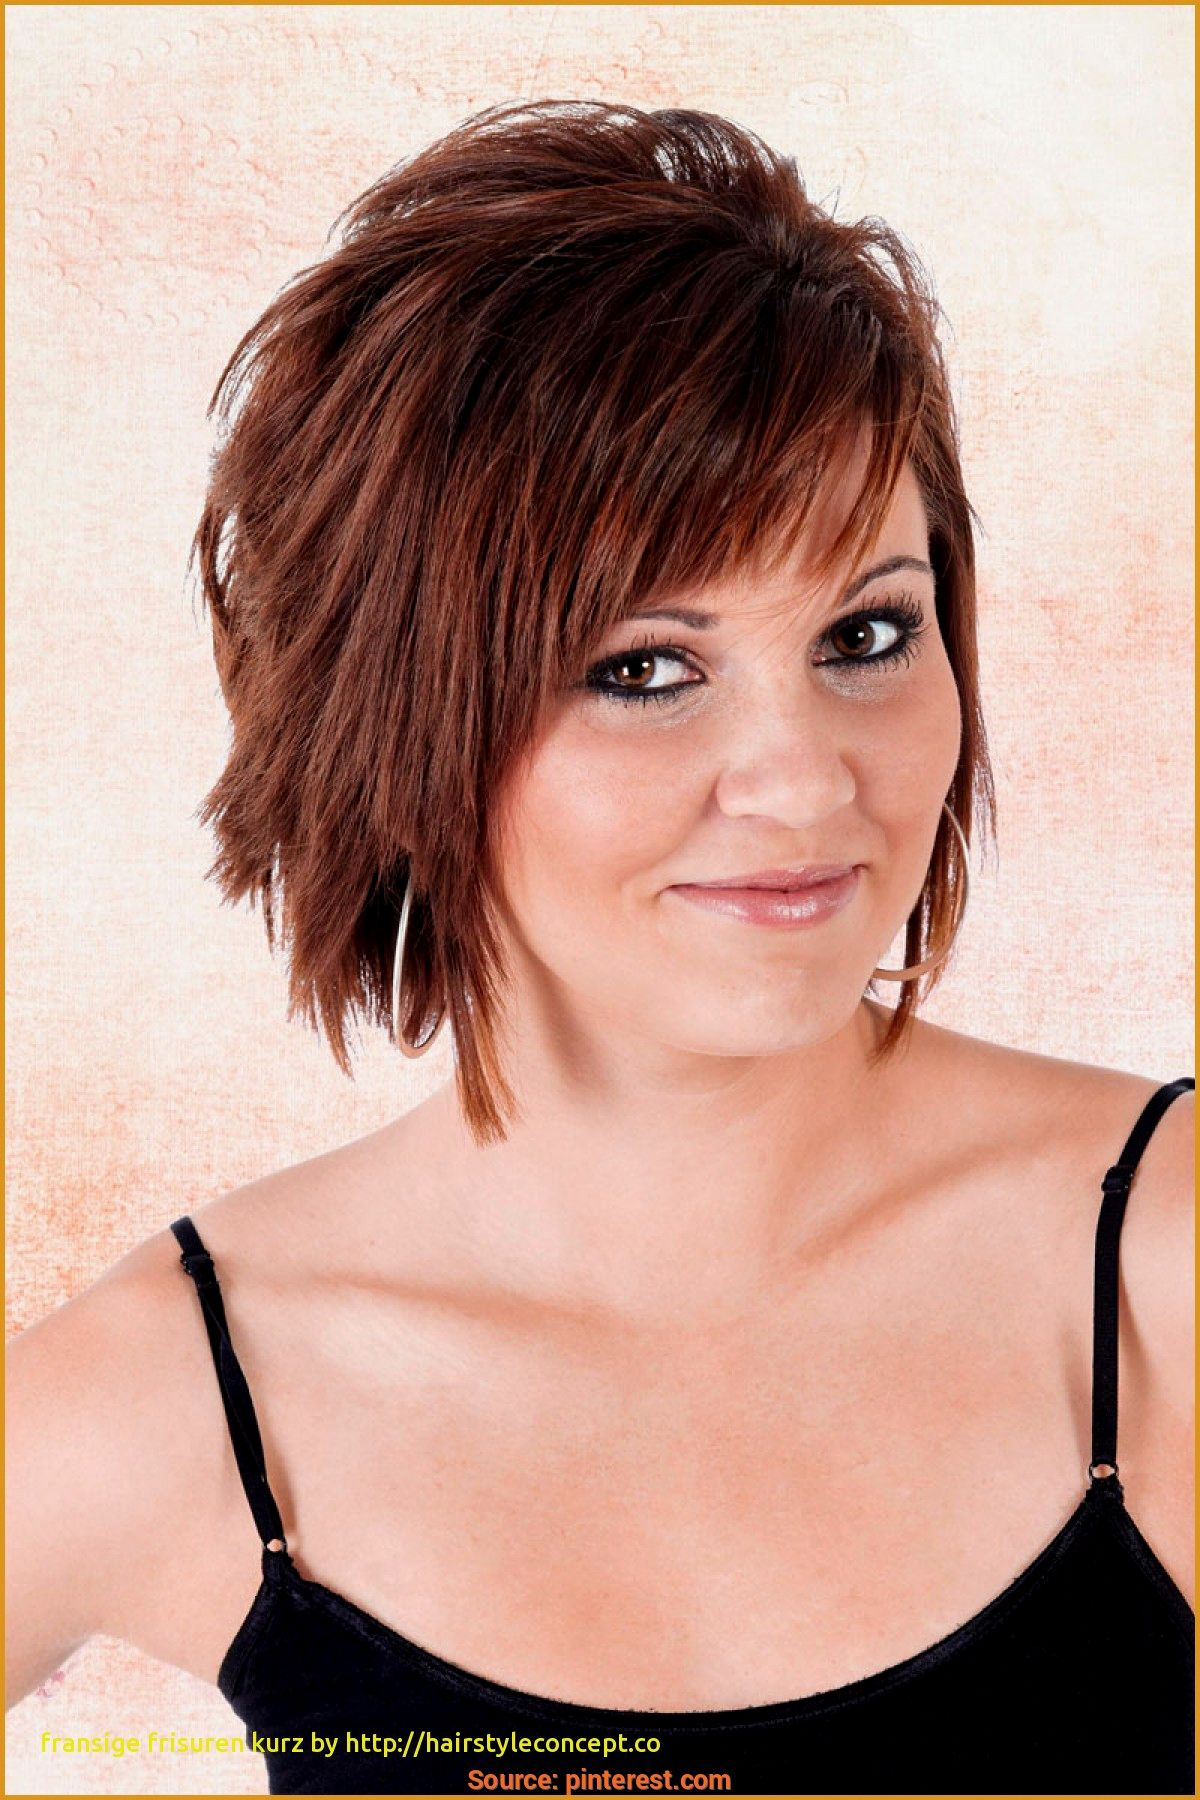 lovely bob hairstyles ladies gallery-Fancy Bob Hairstyles Ladies reviews